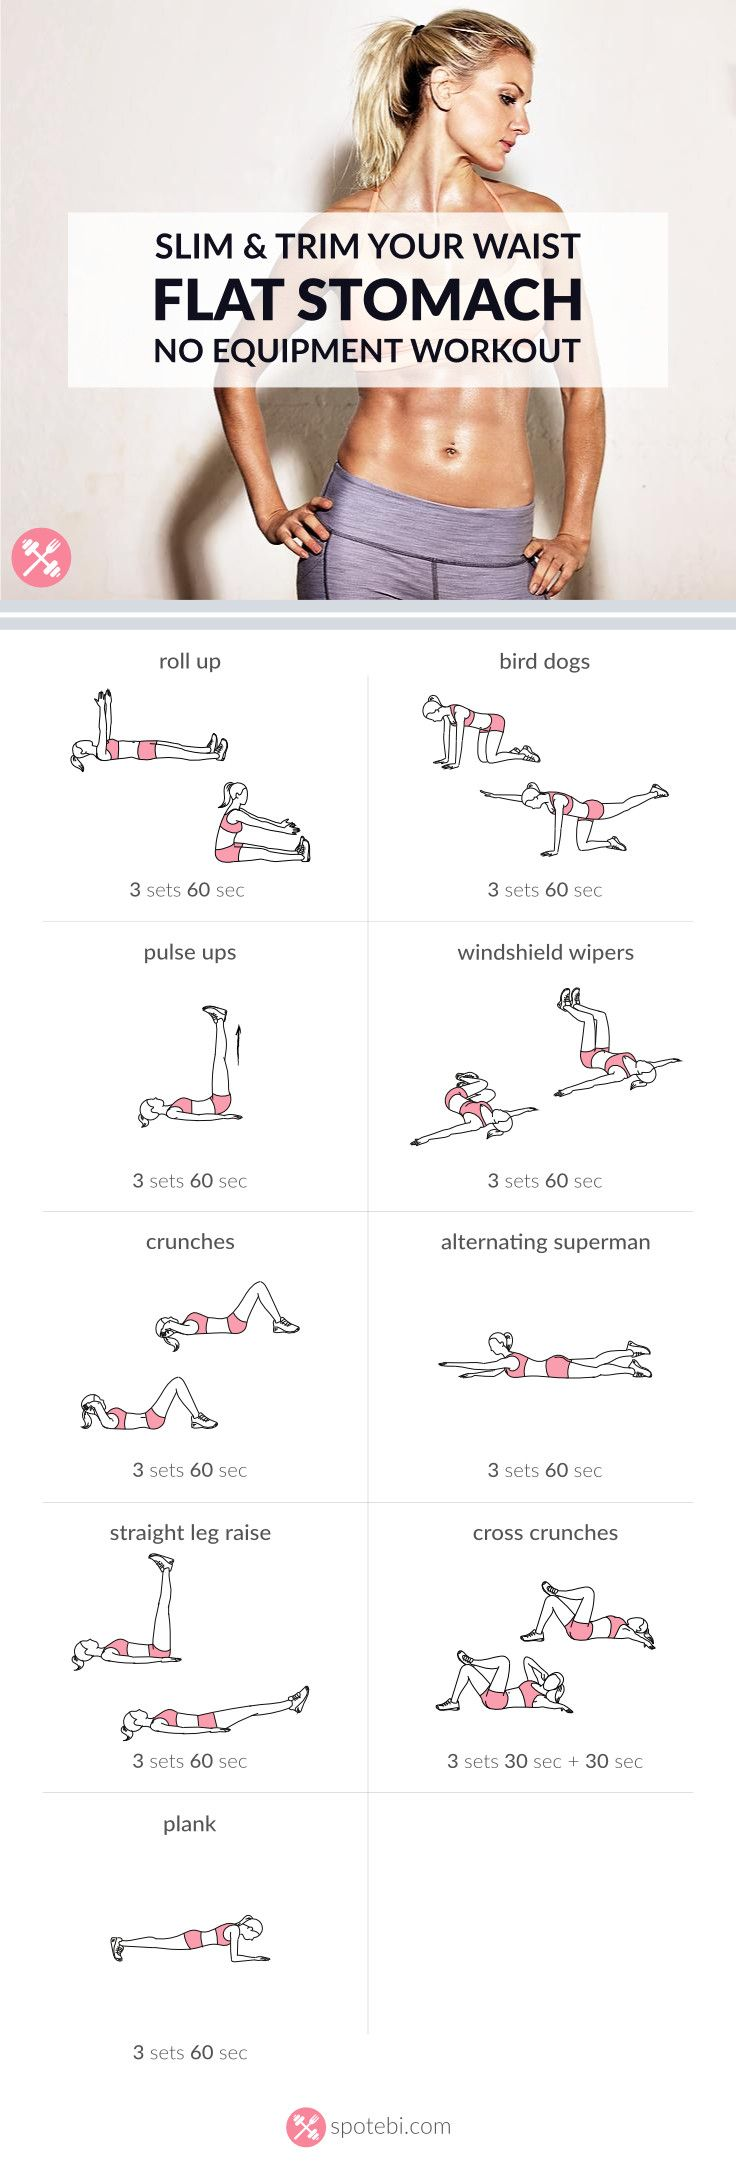 Want to easily whip your tummy into shape? Try this at home flat stomach workout for women to sculpt your abs in no time for a slim, toned and trim belly. http://www.spotebi.com/workout-routines/flat-stomach-workout-slim-trim-waist/